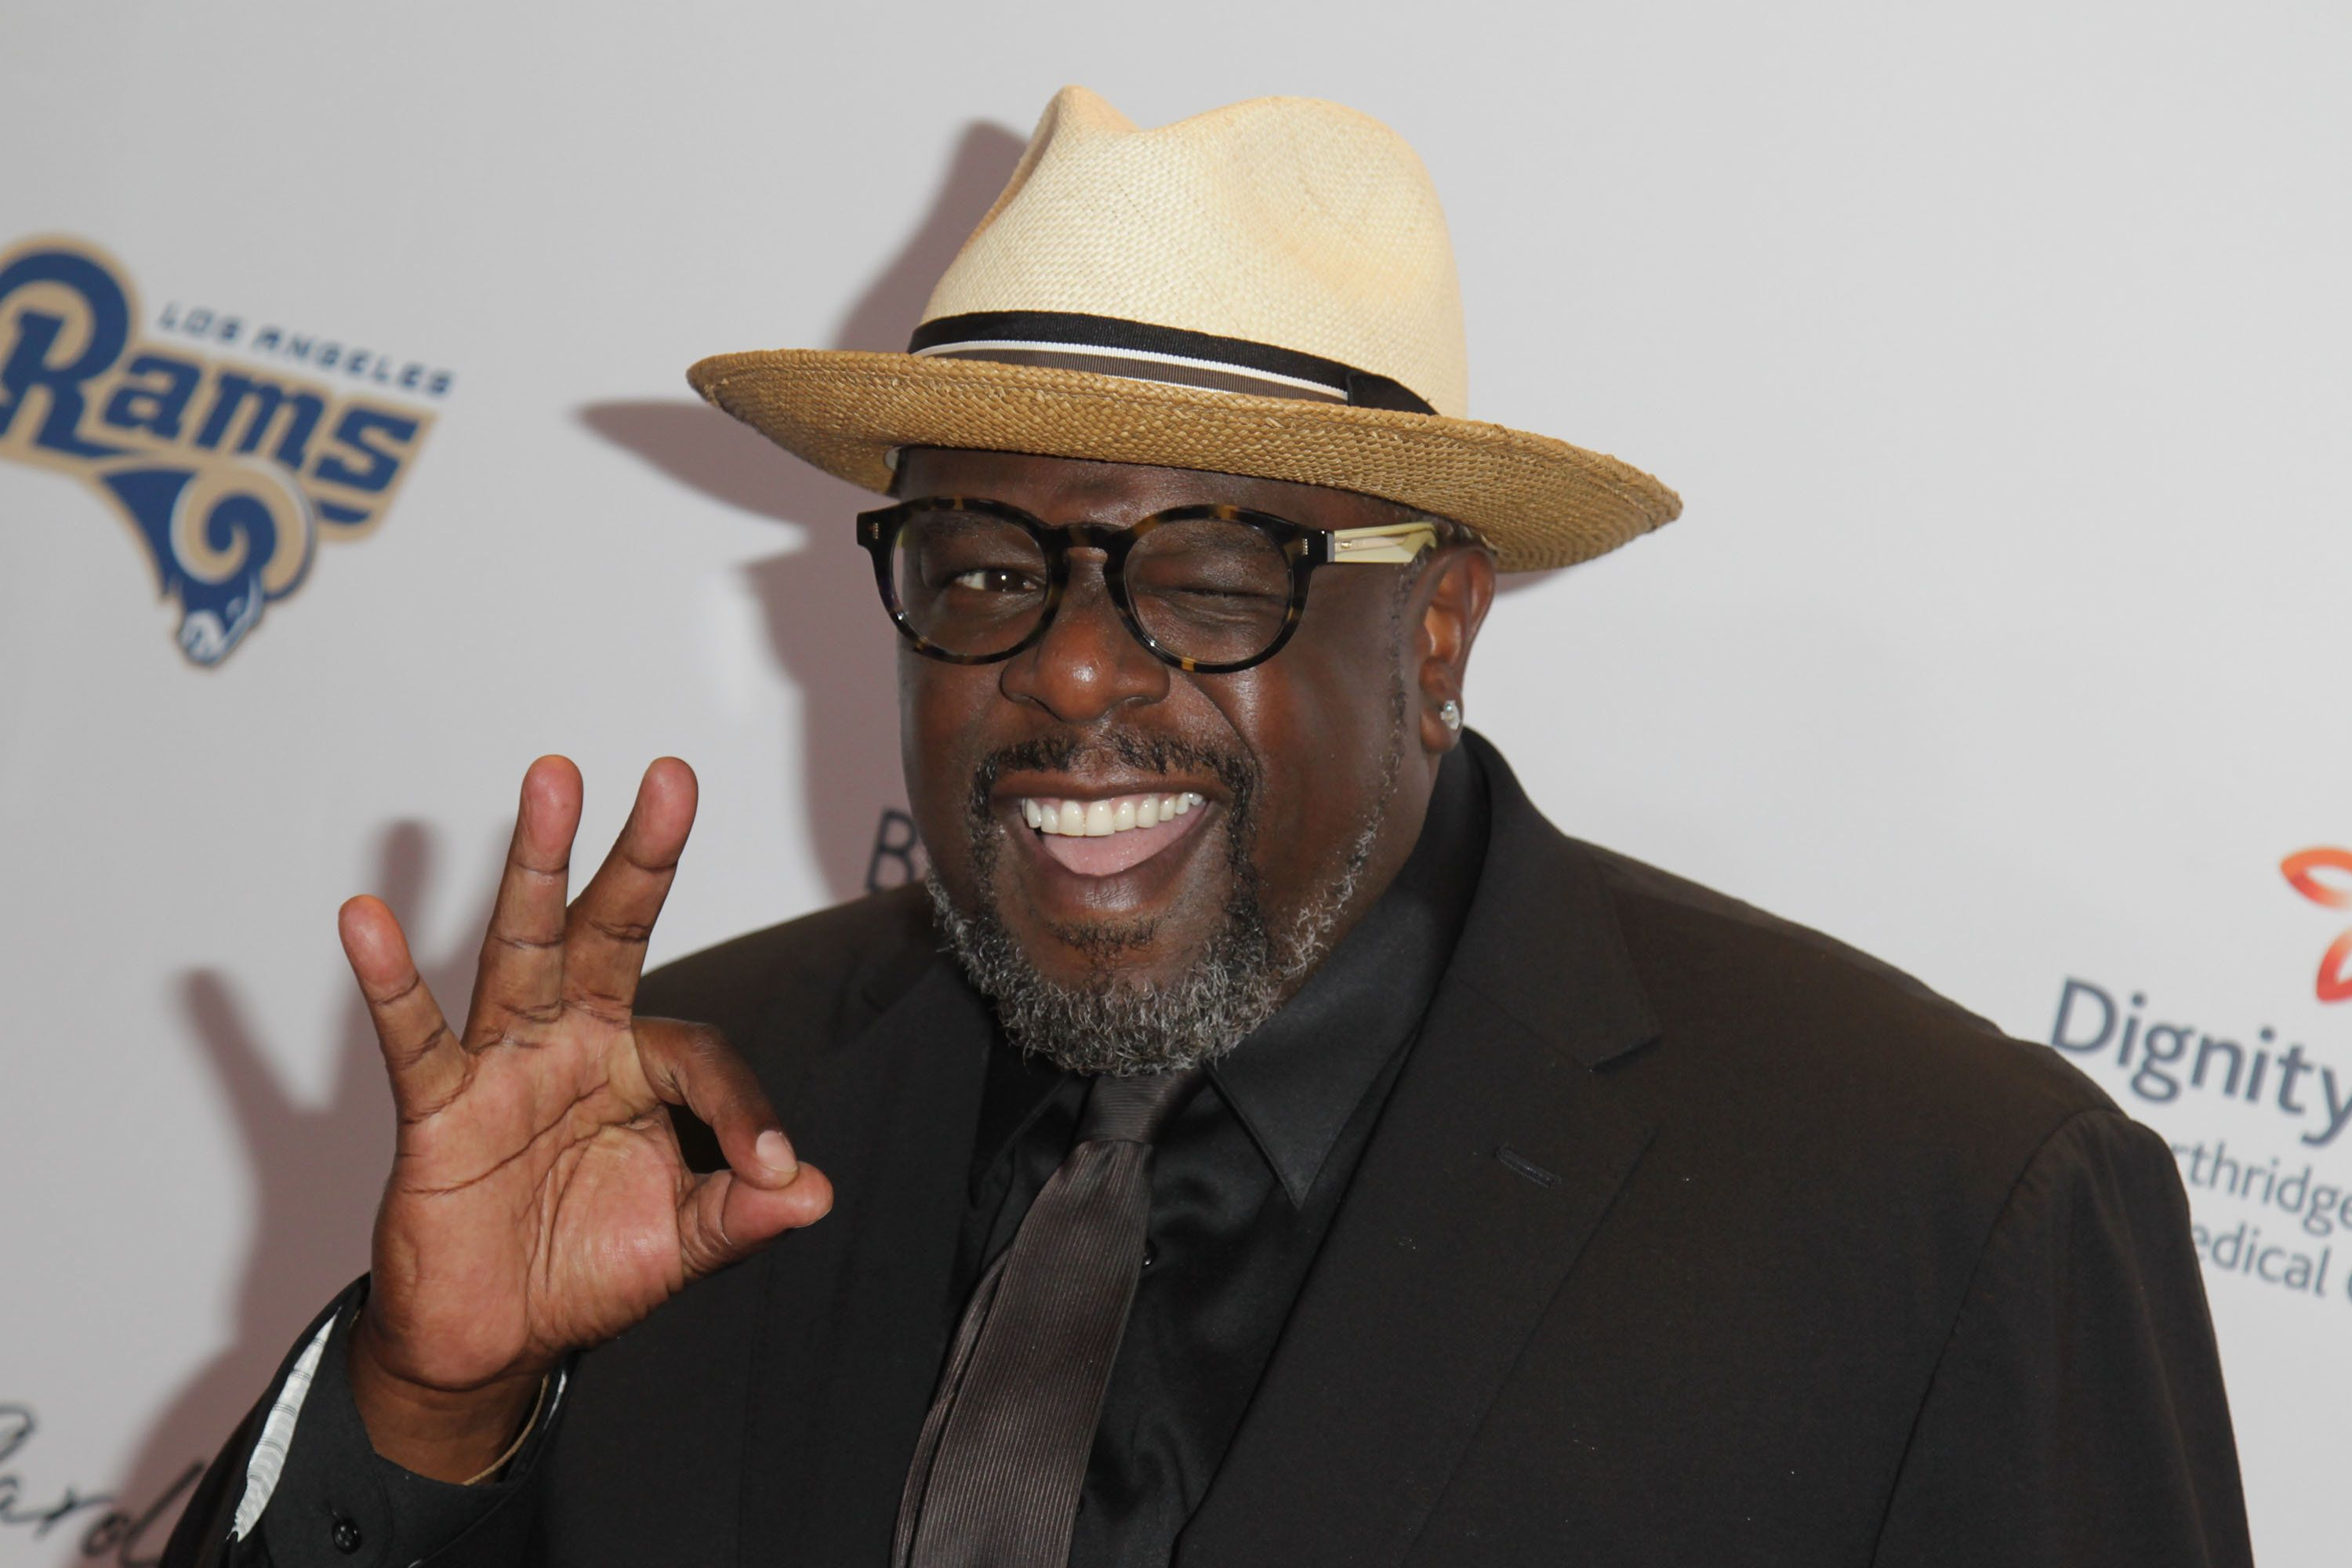 BEVERLY HILLS, CA - AUGUST 12:  Actor Cedric the Entertainer attends 16th Annual Harold And Carole Pump Foundation Gala - Arrivals at The Beverly Hilton Hotel on August 12, 2016 in Beverly Hills, California.  (Photo by Leon Bennett/WireImage)